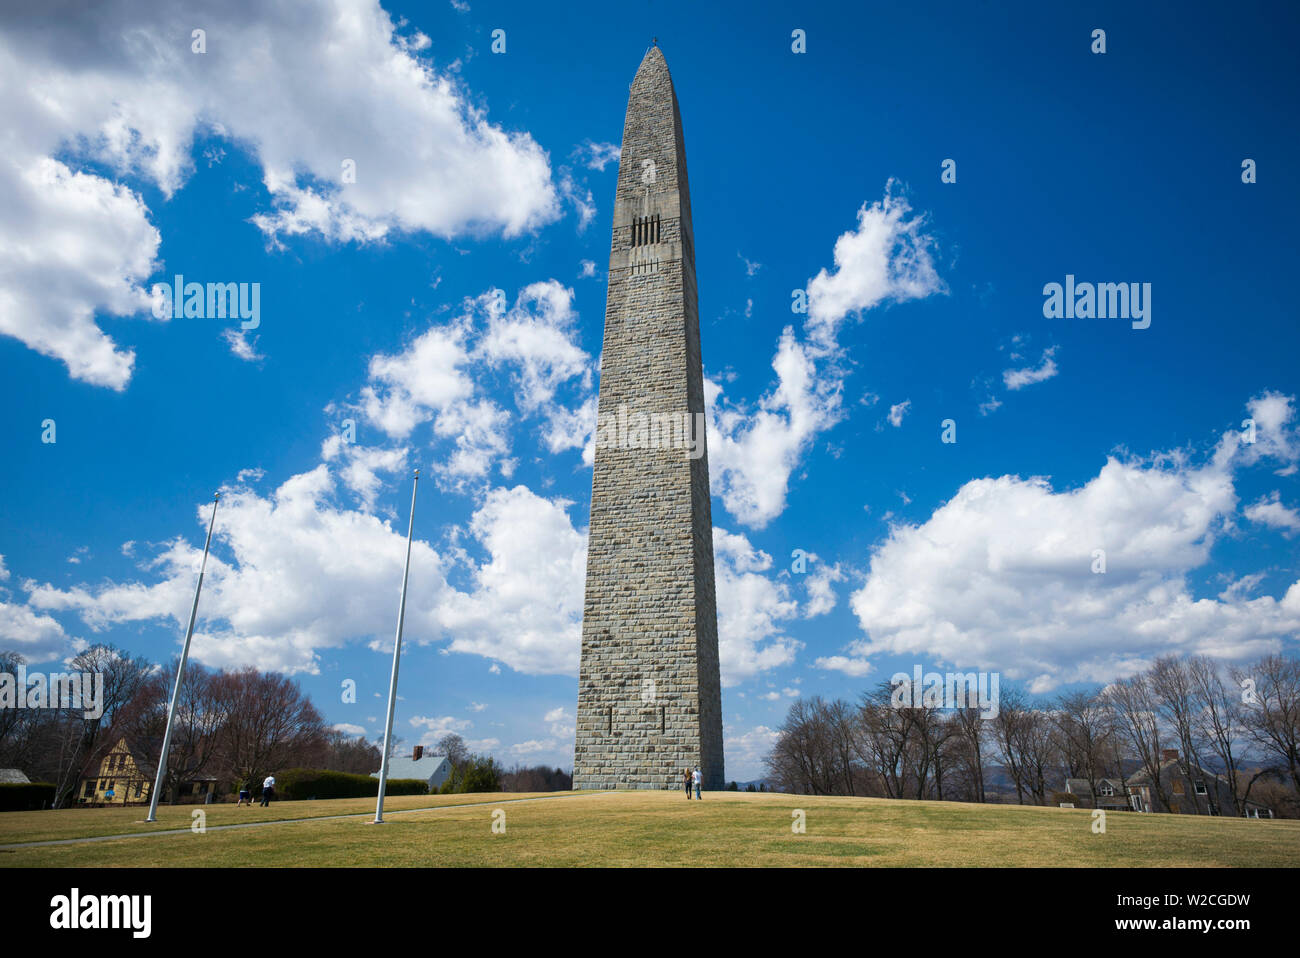 USA, Bennington, Bennington Battle Monument, commemorates American Revolutionary battle of August 16 1777 - Stock Image